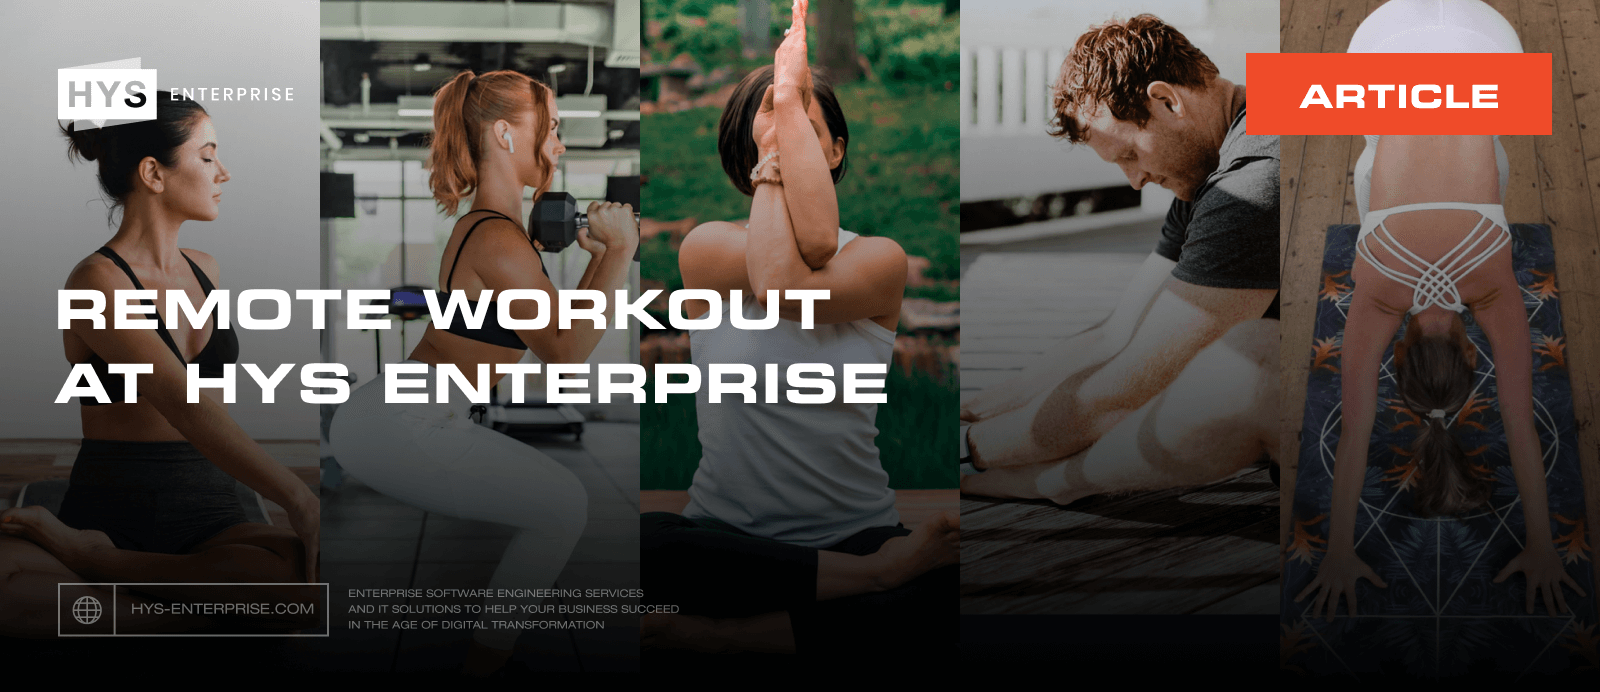 Remote Workout at HYS Enterprise